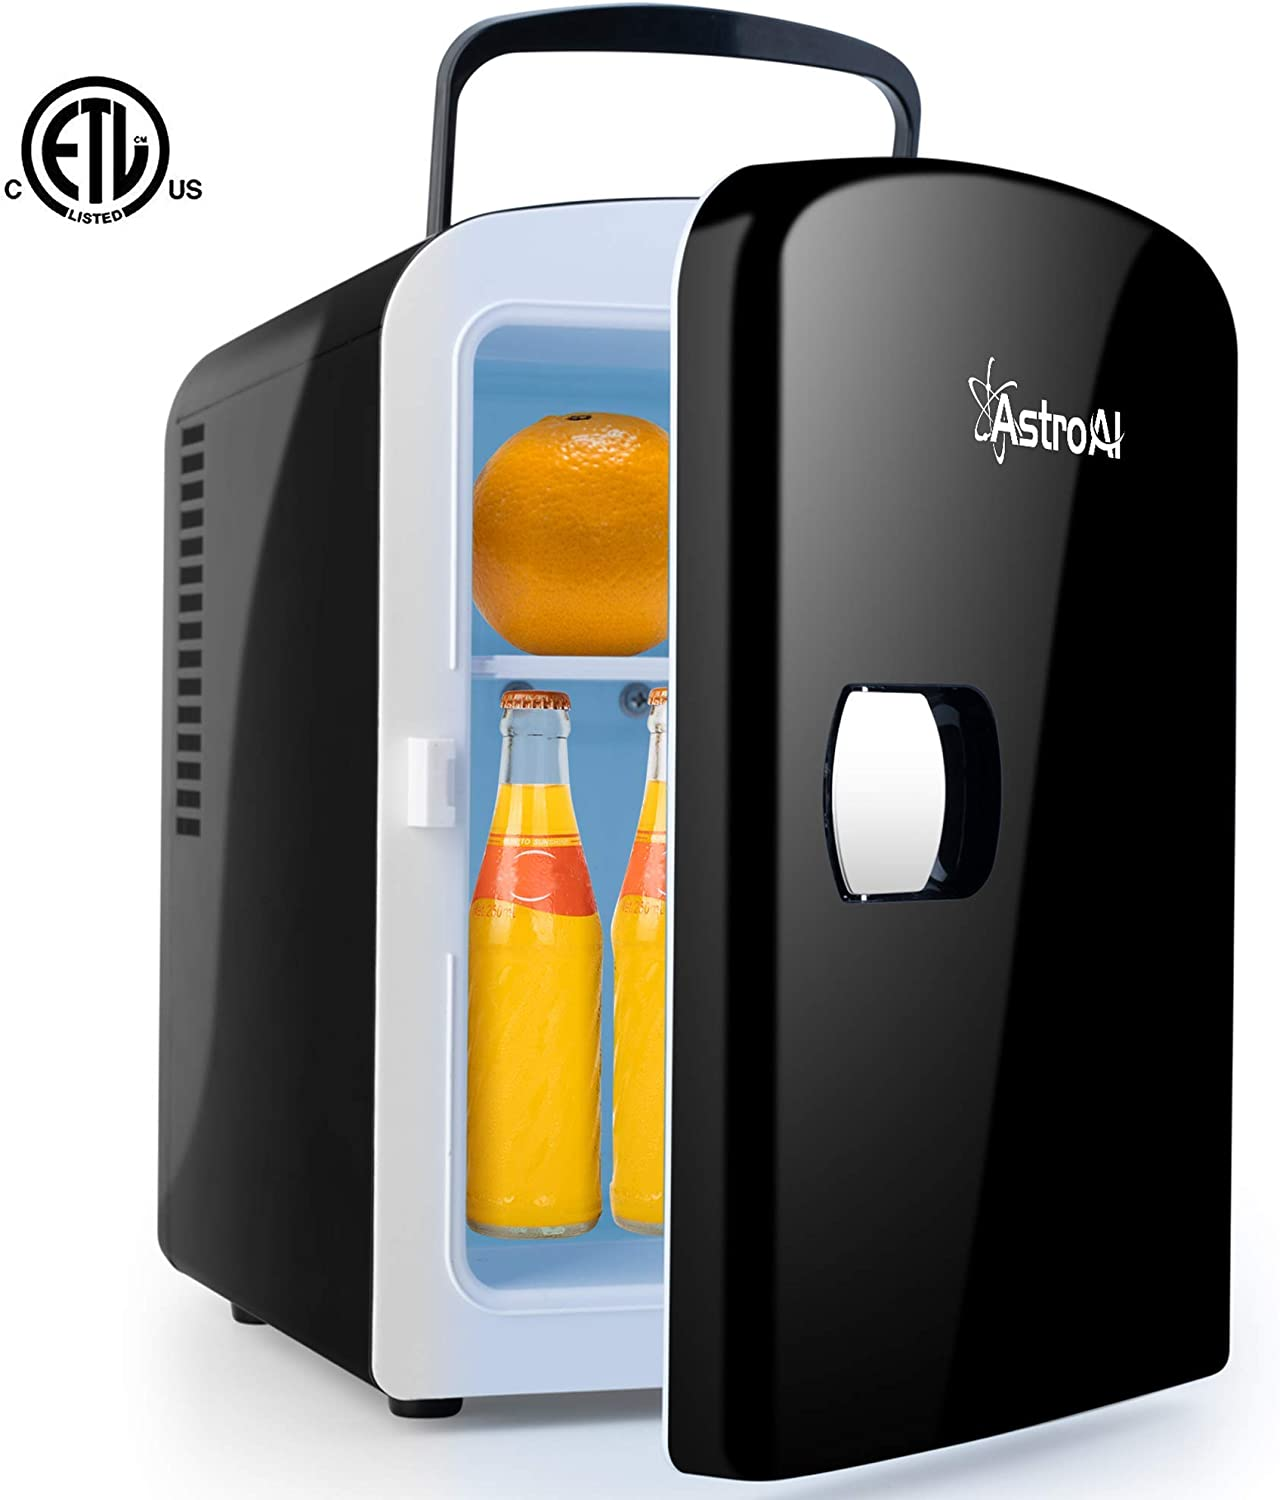 AstroAI Mini Fridge Portable AC/DC Powered Thermoelectric System Cooler and Warmer 4 Liter/6 Can for Cars, Homes, Offices, and Dorms,Black (Renewed)